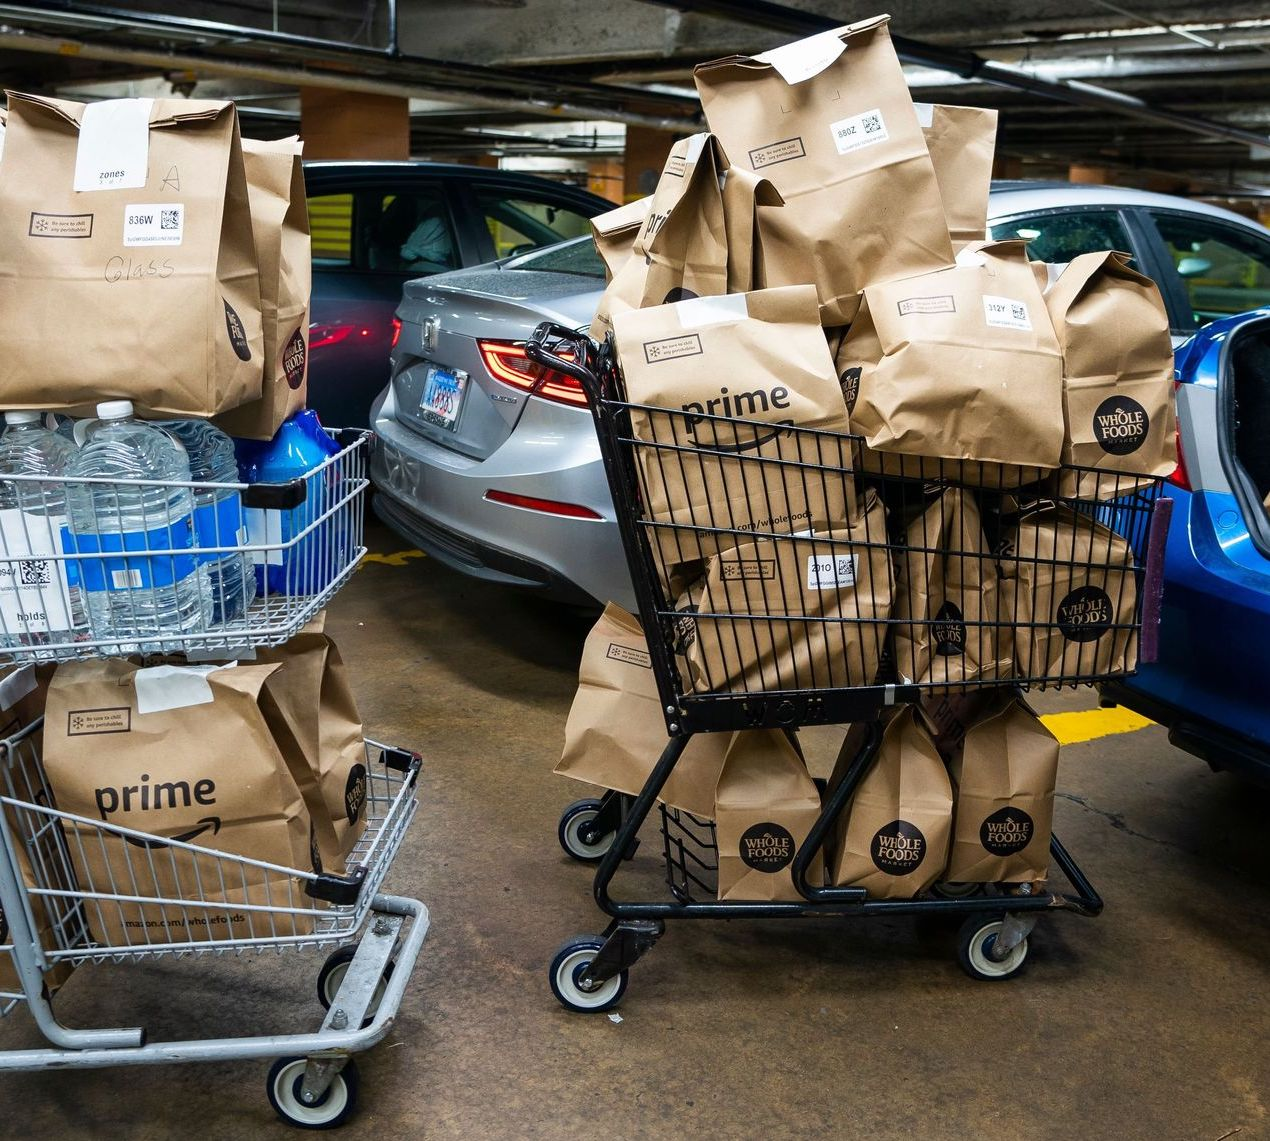 whole foods amazon prime grocery delivery bags in shopping carts